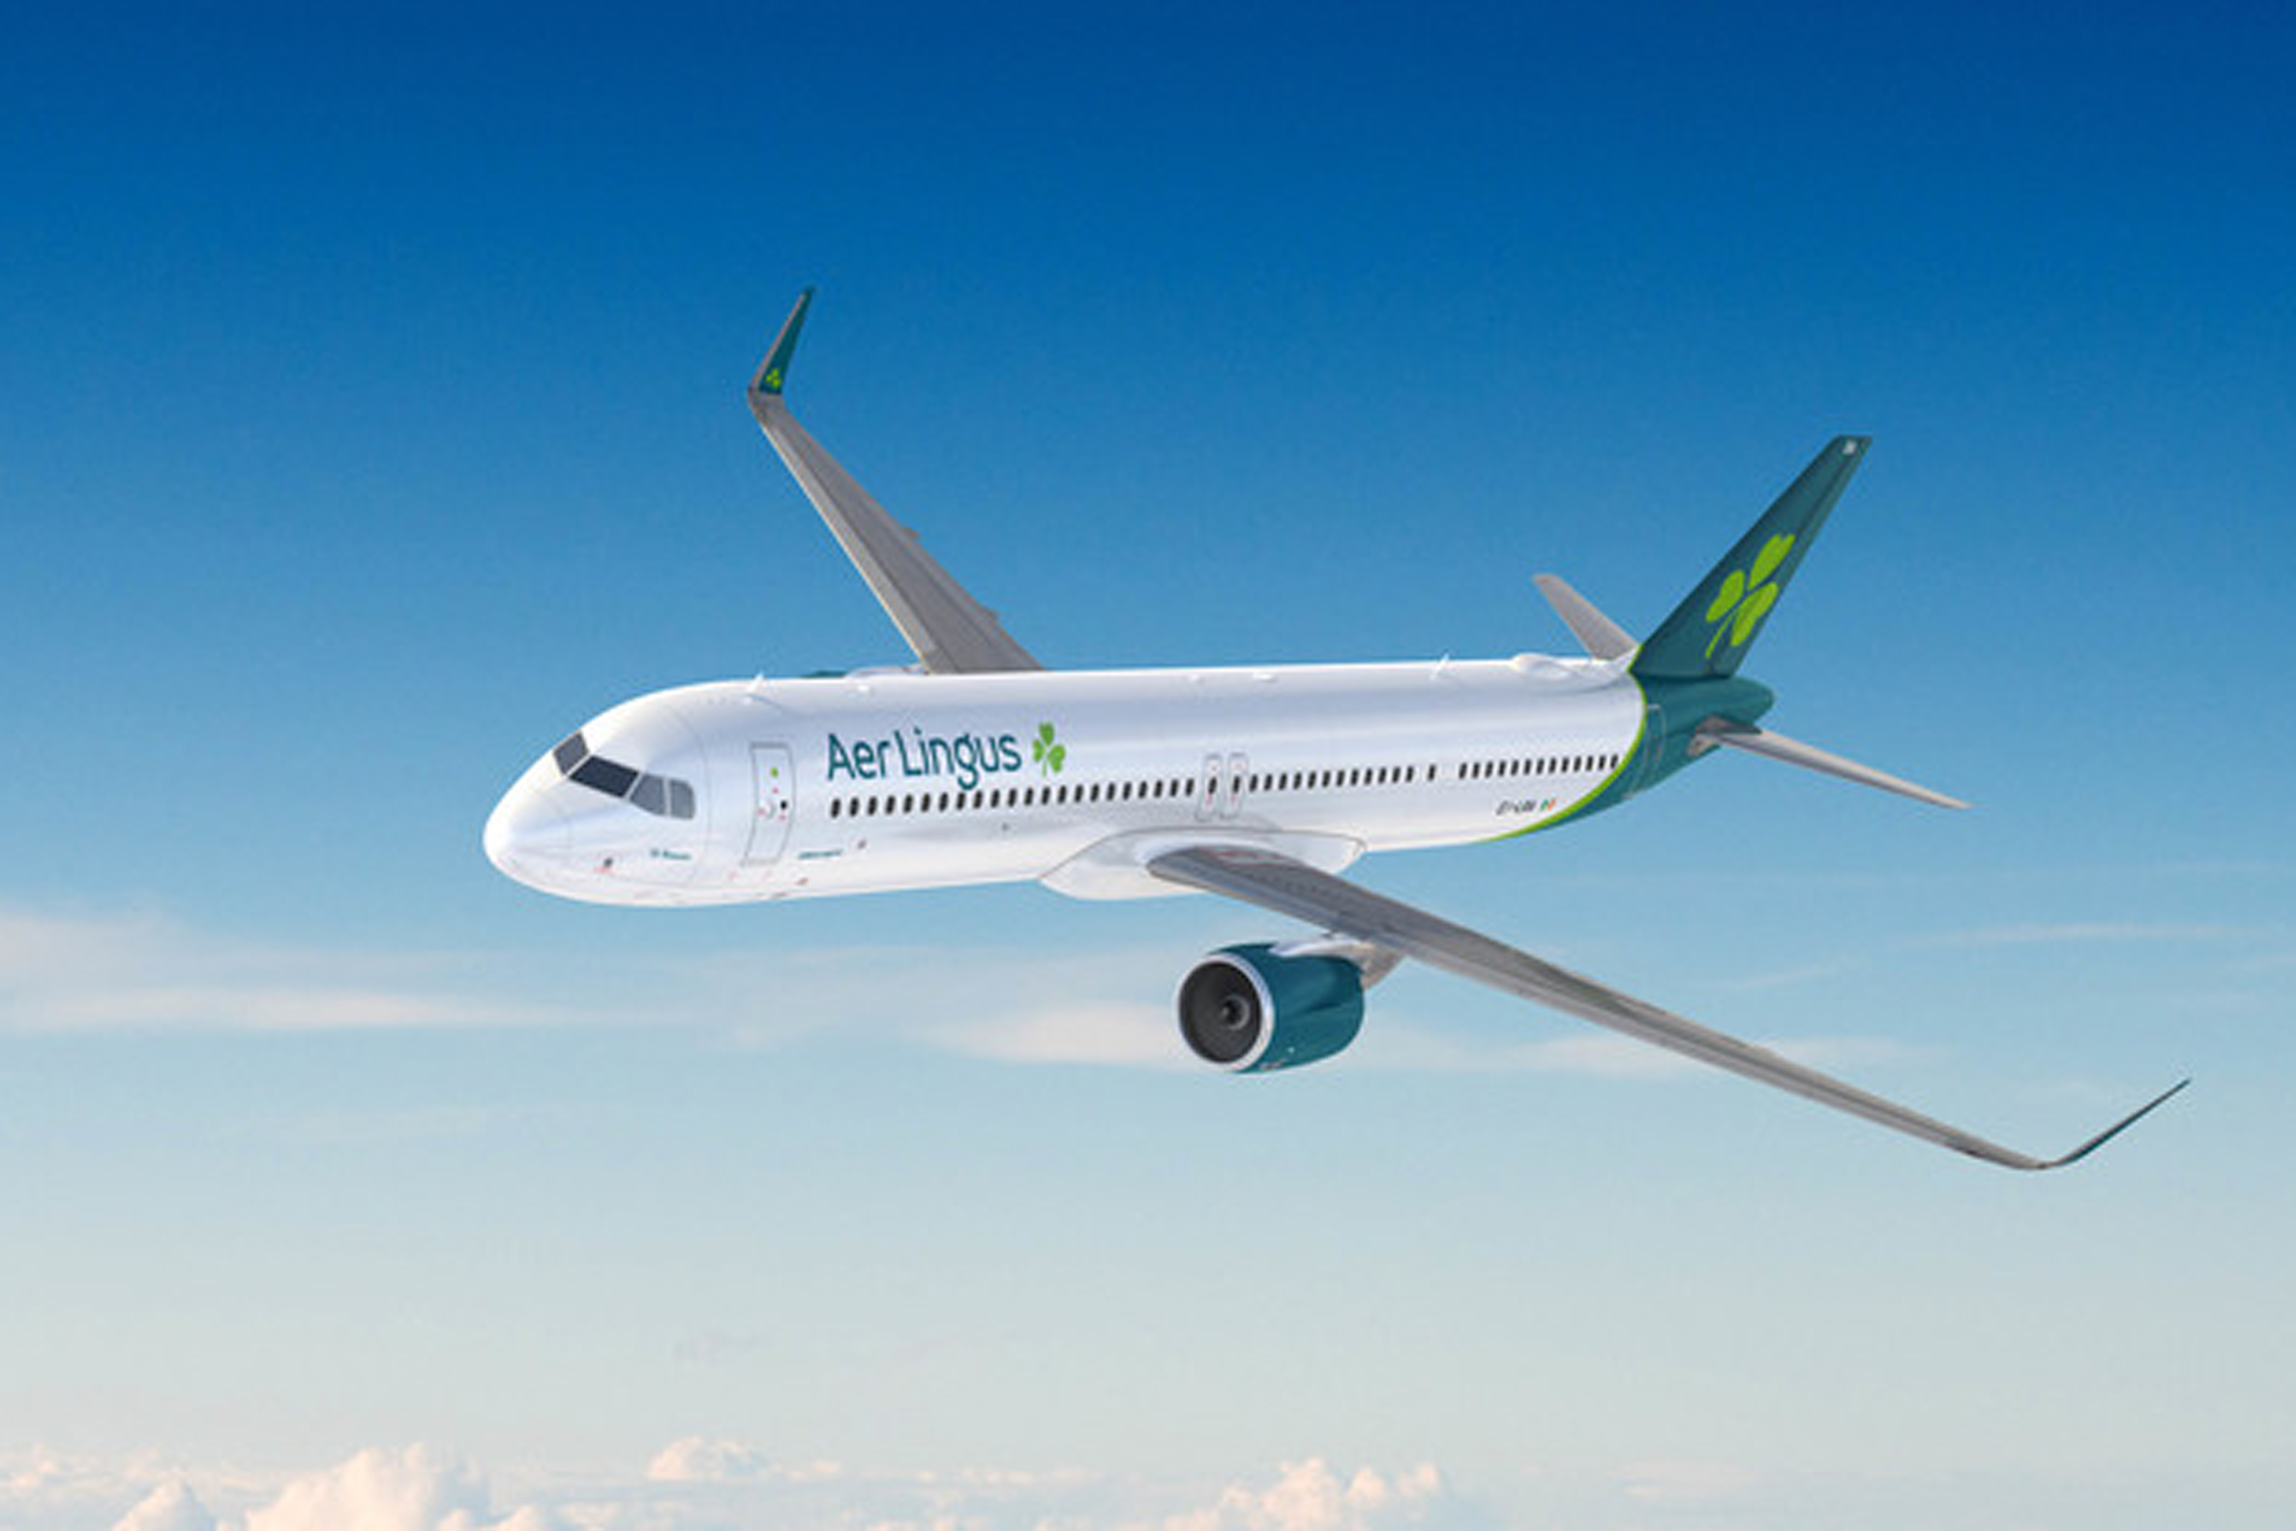 TTG - Travel industry news - Aer Lingus 'planning UK transatlantic flights'